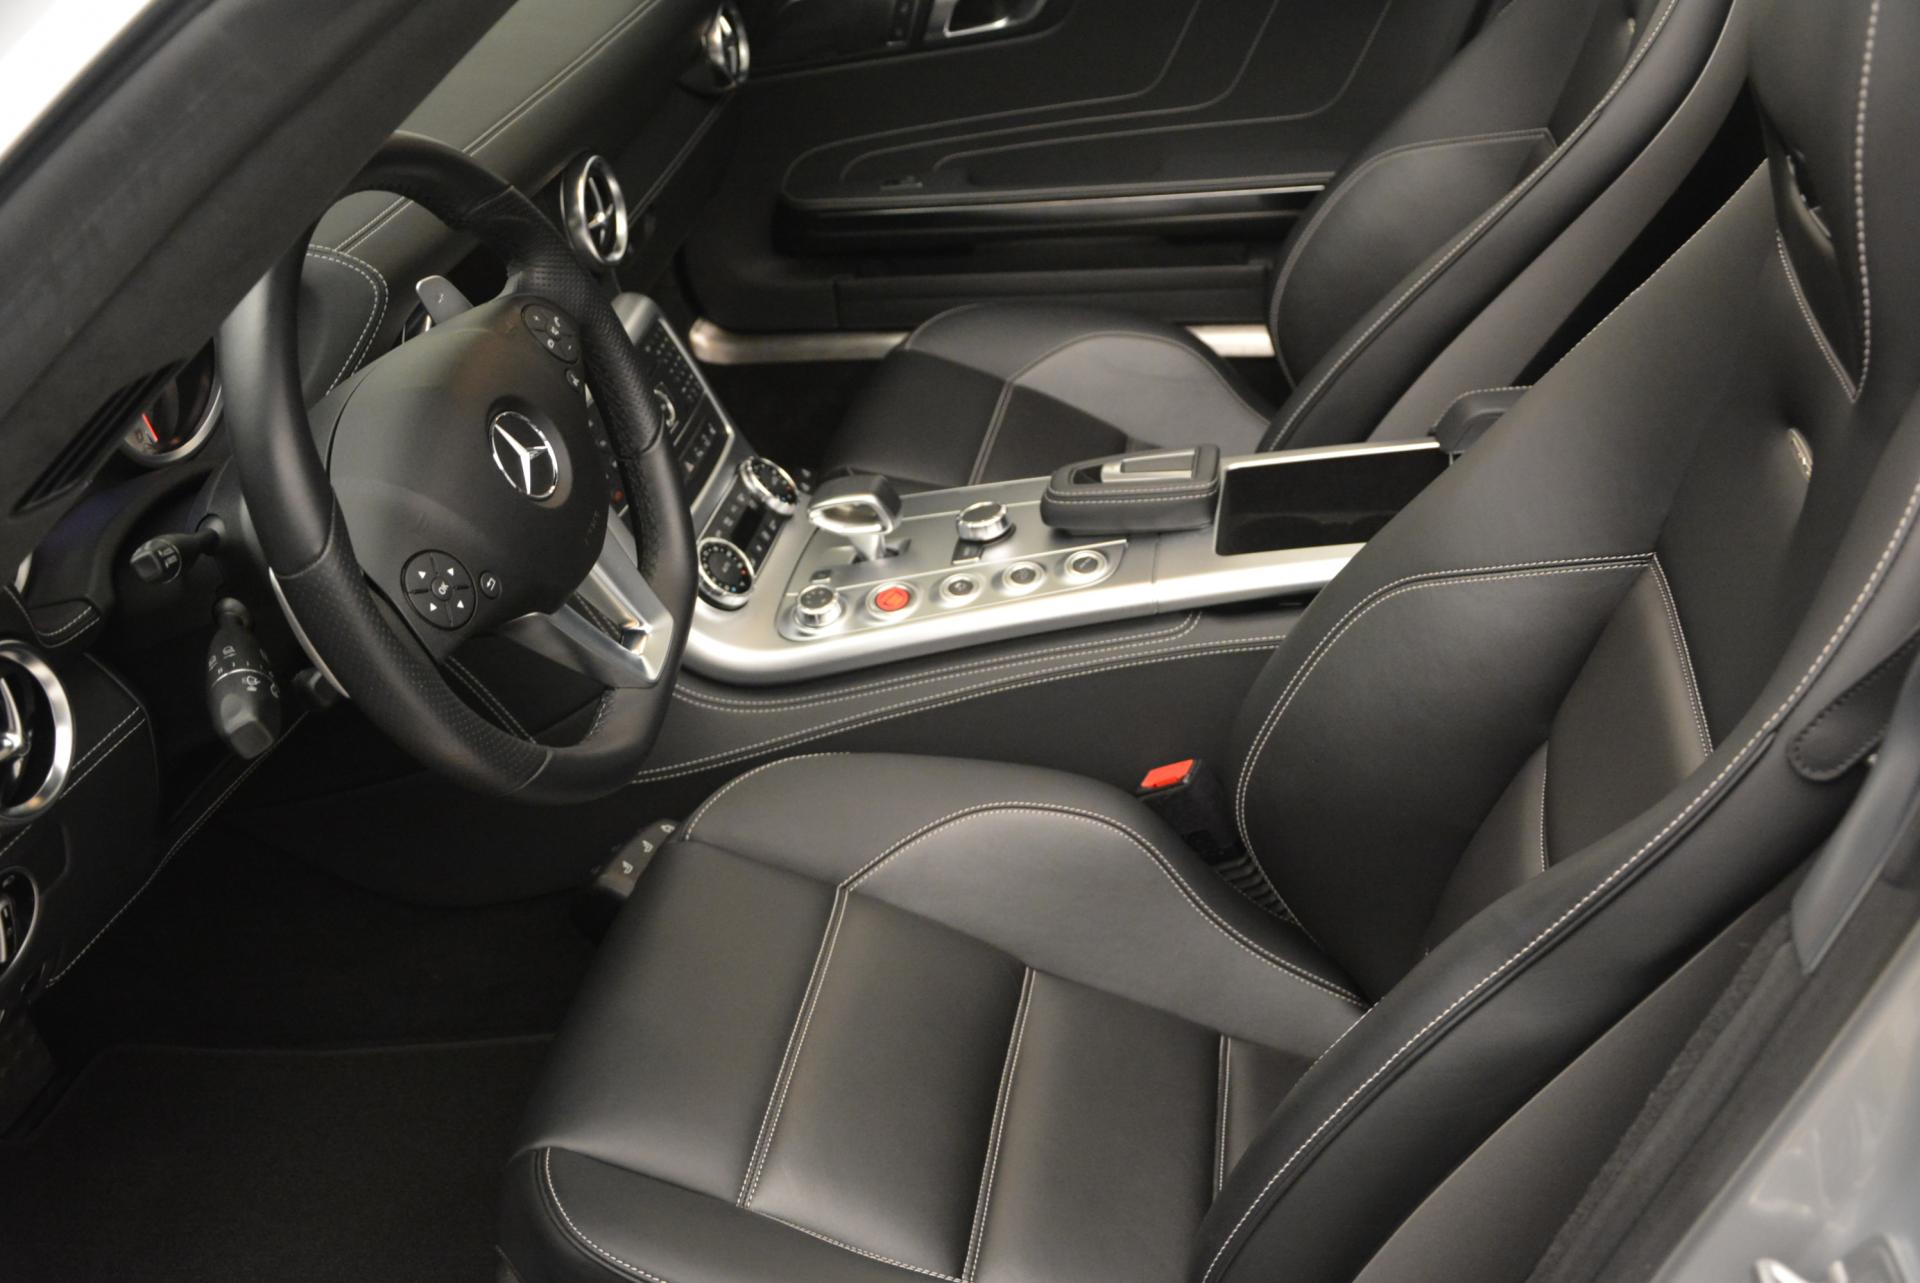 Used 2012 Mercedes Benz SLS AMG  For Sale In Greenwich, CT. Alfa Romeo of Greenwich, 7058 517_p25